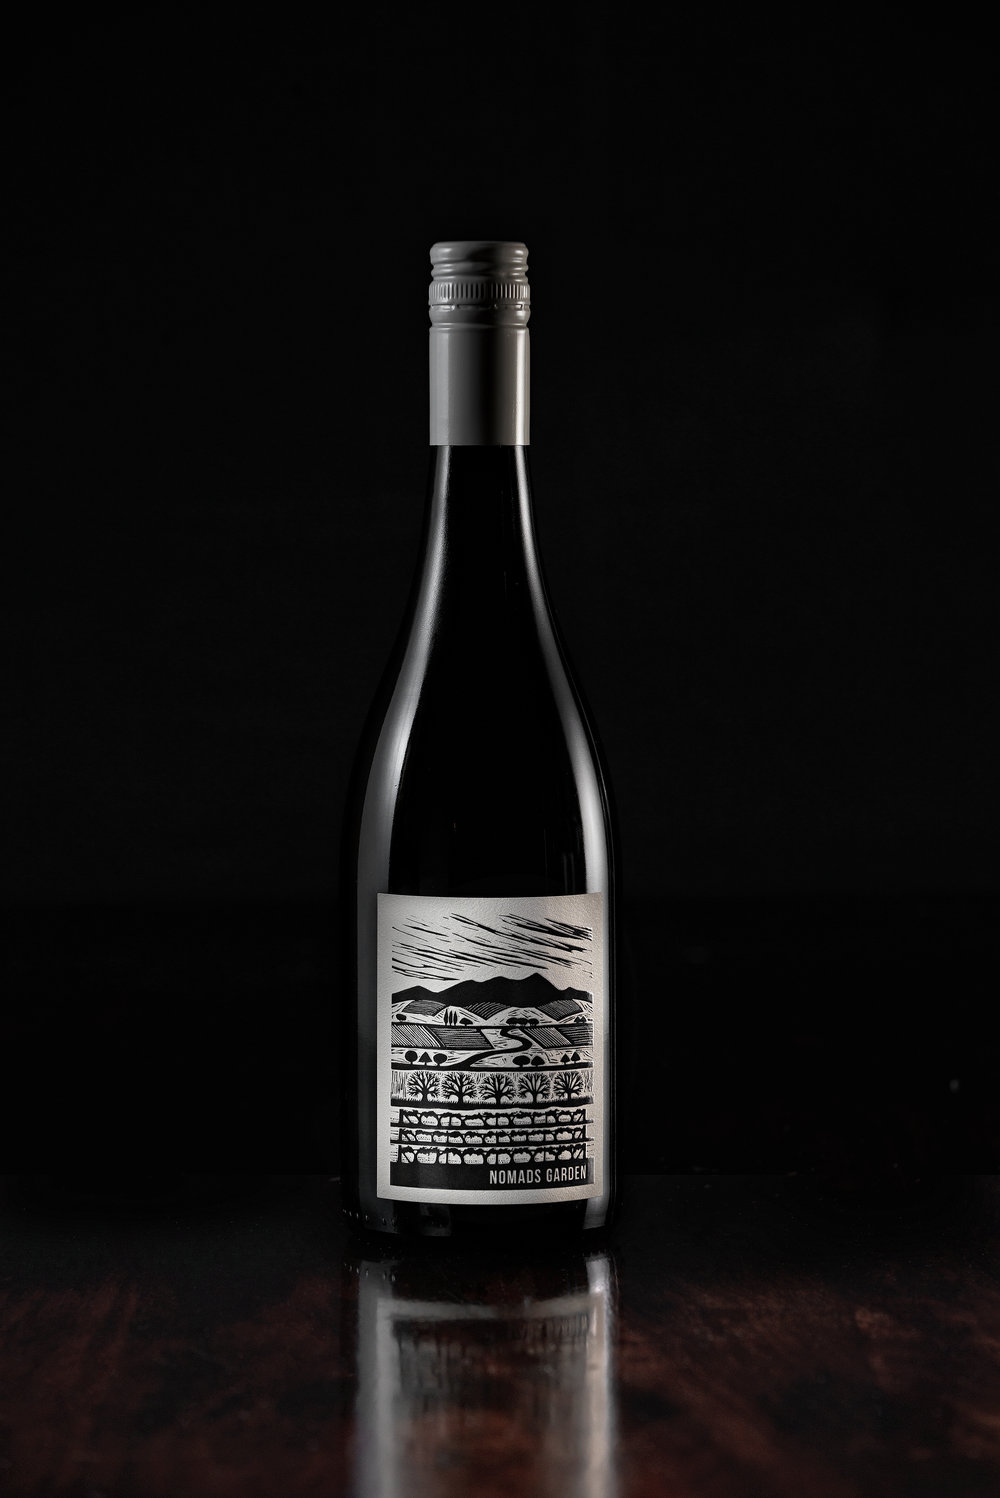 "2018 pinot noir - Handmade - Hand Plunged - Basket Pressed - Wild Yeast Ferment - Unfined  - No Acid Added - Barrel Aged on LeesVineyard ~ Greenacres Vineyard, Alpine ValleysSourced from one of the most passionate salt of the earth growers we know in Brian ""Bri"" Llewis from his spectacular Greenacres Vineyard in Merriang South. This vineyard is deep in an isolated valley of the sprawling Alpine Valleys GI and such a cool site it is not unusual for it to snow there a couple of times over the winter period.As with all wines released under the Nomads Garden range input from us in the winery was kept to an absolute minimum. Instead careful attention was paid to working closely with Bri and ensuring the grapes were picked at exactly the right moment to ensure the natural pH and the flavours were just right.This is a pilot run, a very promising one at that. The goal, to make a good Pinot Noir from North East Victoria that actually looks like a Pinot. Only 700kg of fruit was available to us in 2018, although it was of a very high quality. Unlike may Pinot vineyards in the North East this is a Vineyard dedicated to growing fruit for table wine not sparkling base, this means it is cropped at much lower levels. Handpicked at daybreak with a baume of 12.8. Destemmed not crushed with 15% whole bunches added to the ferment, the grapes were protected under CO2 prior to the natural wild yeast fermentation commencing 3 days later. No pump overs or plunging where done as we didn't want the wine to become over extracted. Instead once a day we used our hands to lightly push the cap down and wet it. A short 15 days on skins before gentle basket pressing to a single 5 year old French oak Puncheon. Oak of this age will impart very little, if any oak characteristics instead we believe they are the best vessel for wines to ferment and age in. Oak is a natural living product that allows the wines to breath and evolve with time, something not possible with tanks.The Pinot Noir then spent 12 months in oak on full lees (lees are the solids that drop and of the wine post fermentation) to build texture. The wine was then lightly filtered and bottled, before been given at least 3 months post bottling to settle. We believe this be a promising start to what will hopefully become staple of the Nomads Garden range."